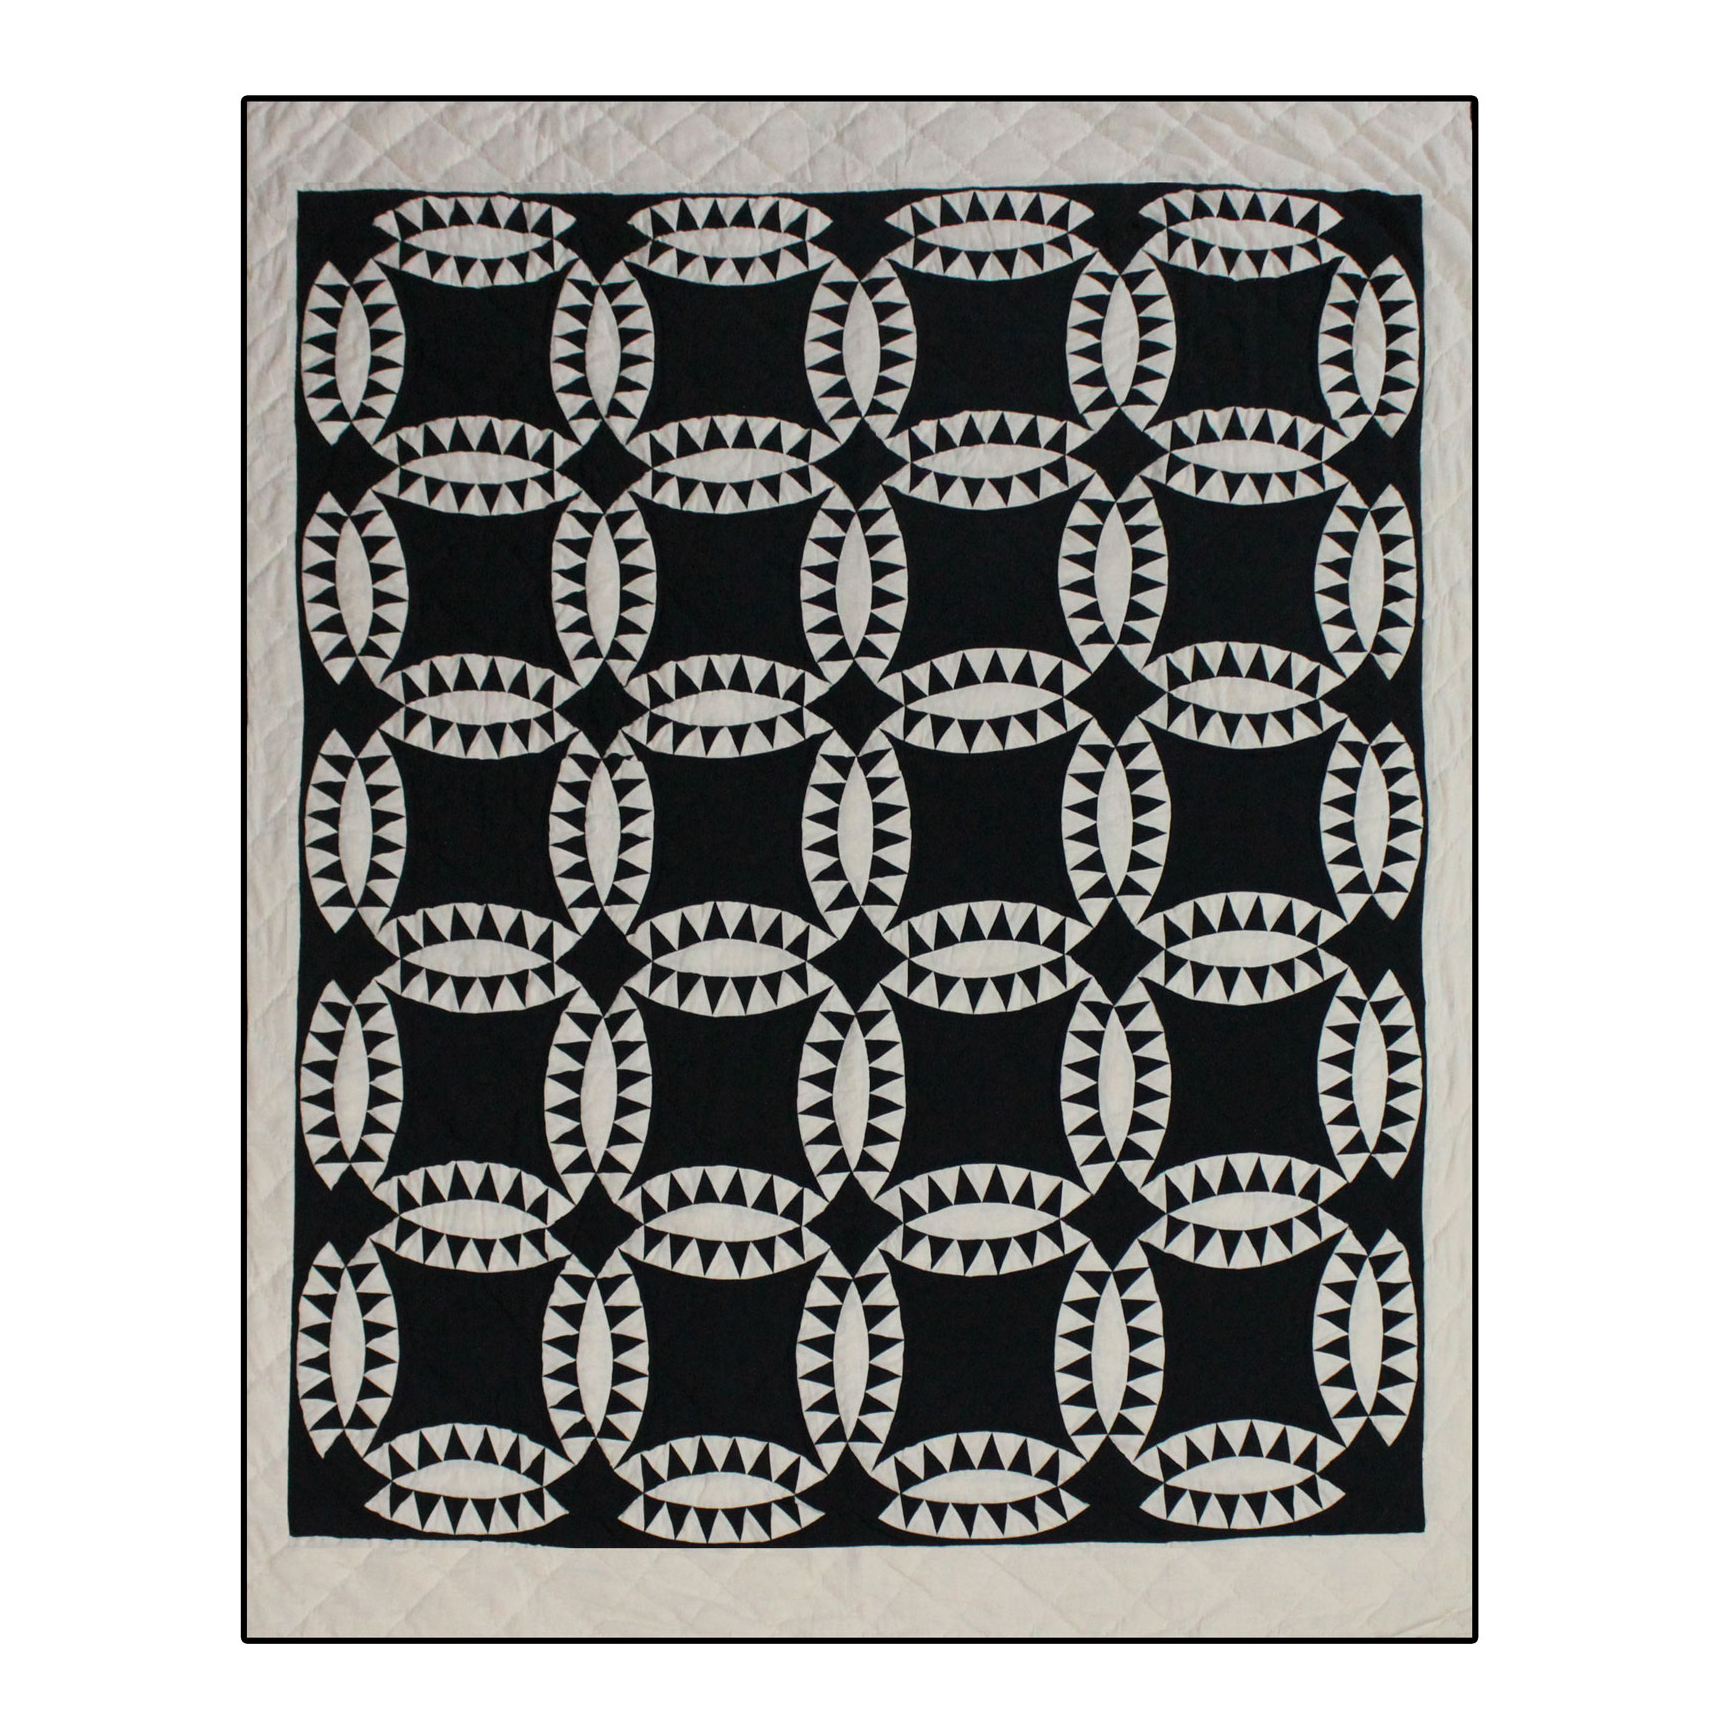 "Black and White Wedding Ring Queen Quilt 85""W x 95""L"